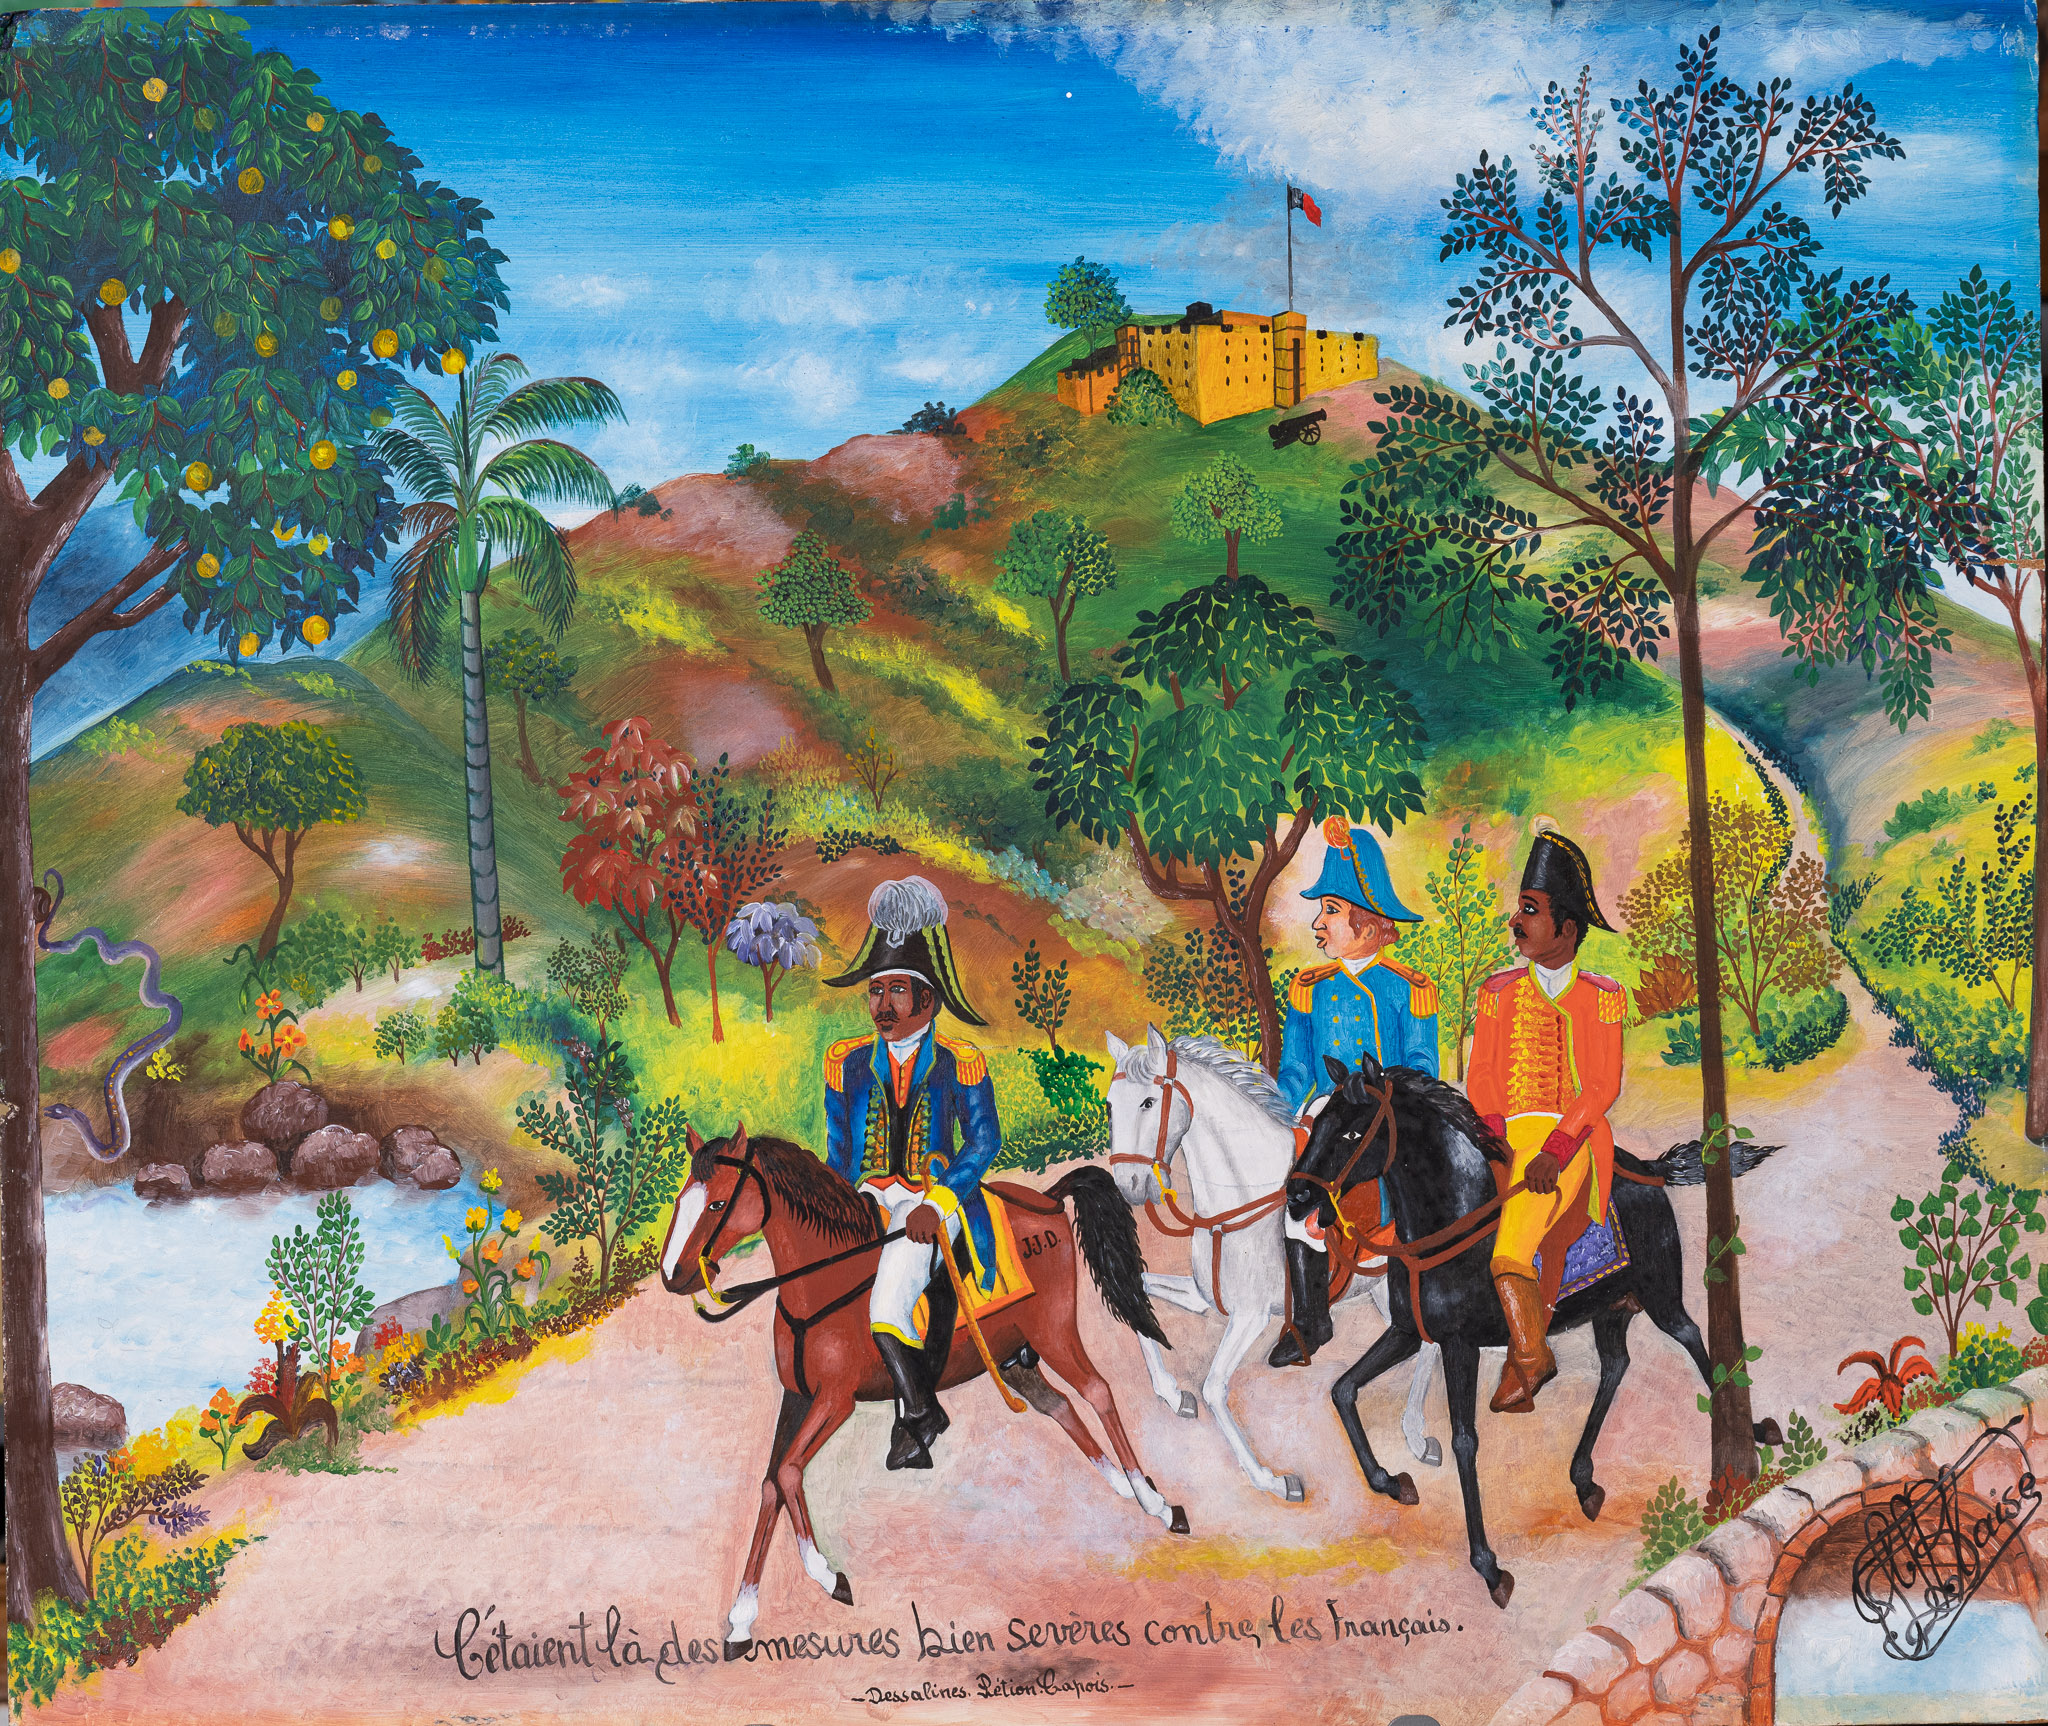 Dessalines, Petion and Capois, 1975